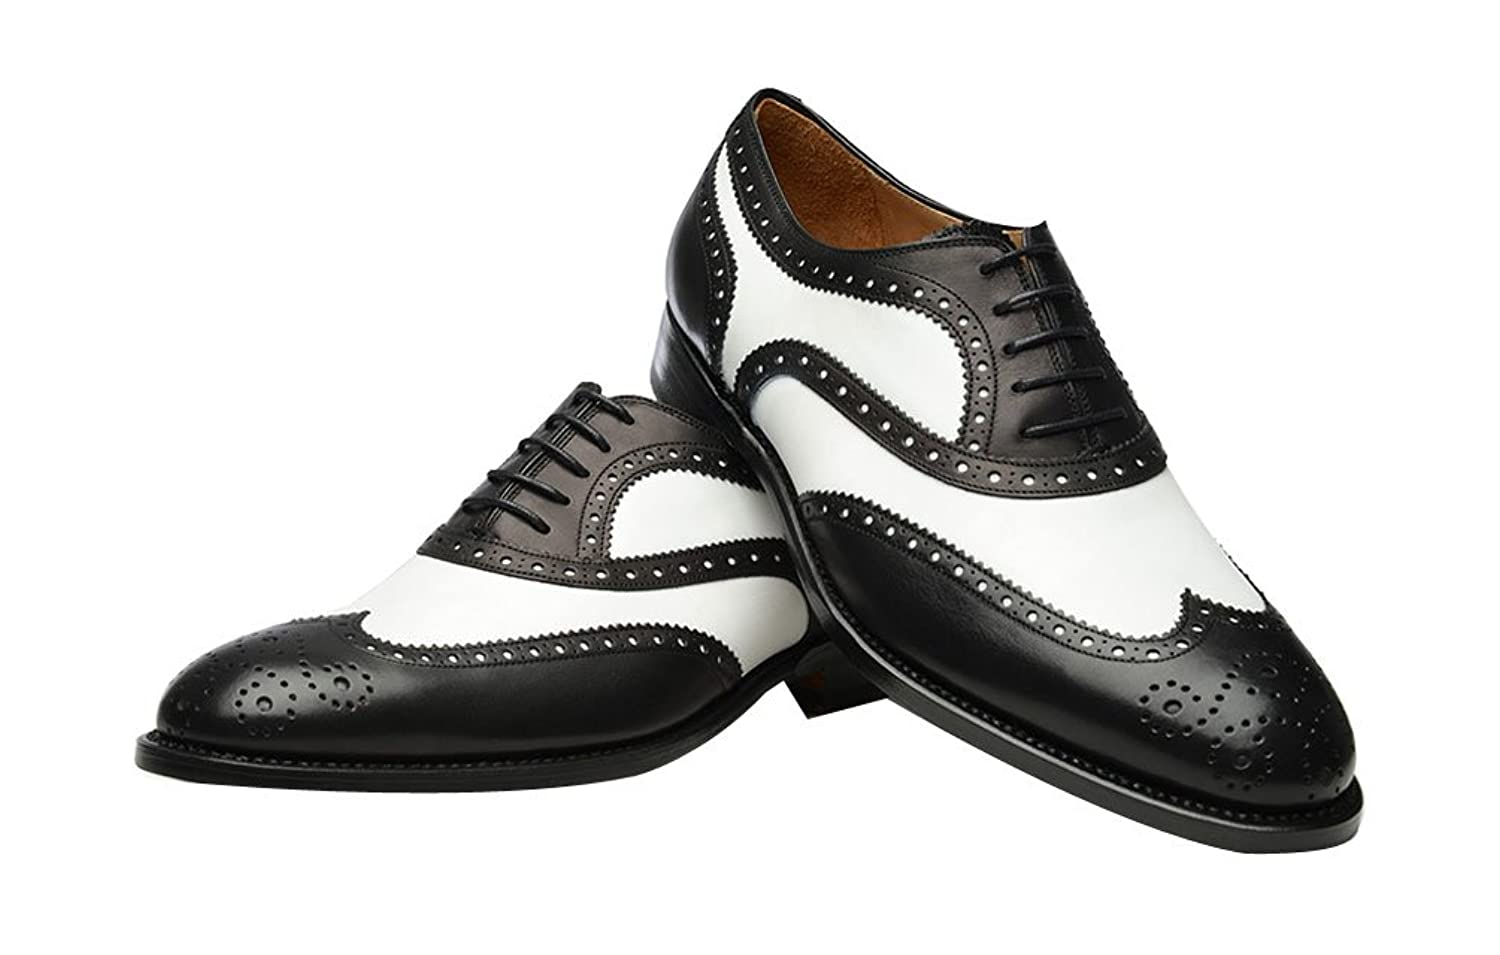 5 Types of Great Gatsby Mens Shoes ROYAL WIND Geninue Leather Spectator Shoes Mens Black White Lace up Wing Tip Perforated Dress Shoes $79.99 AT vintagedancer.com